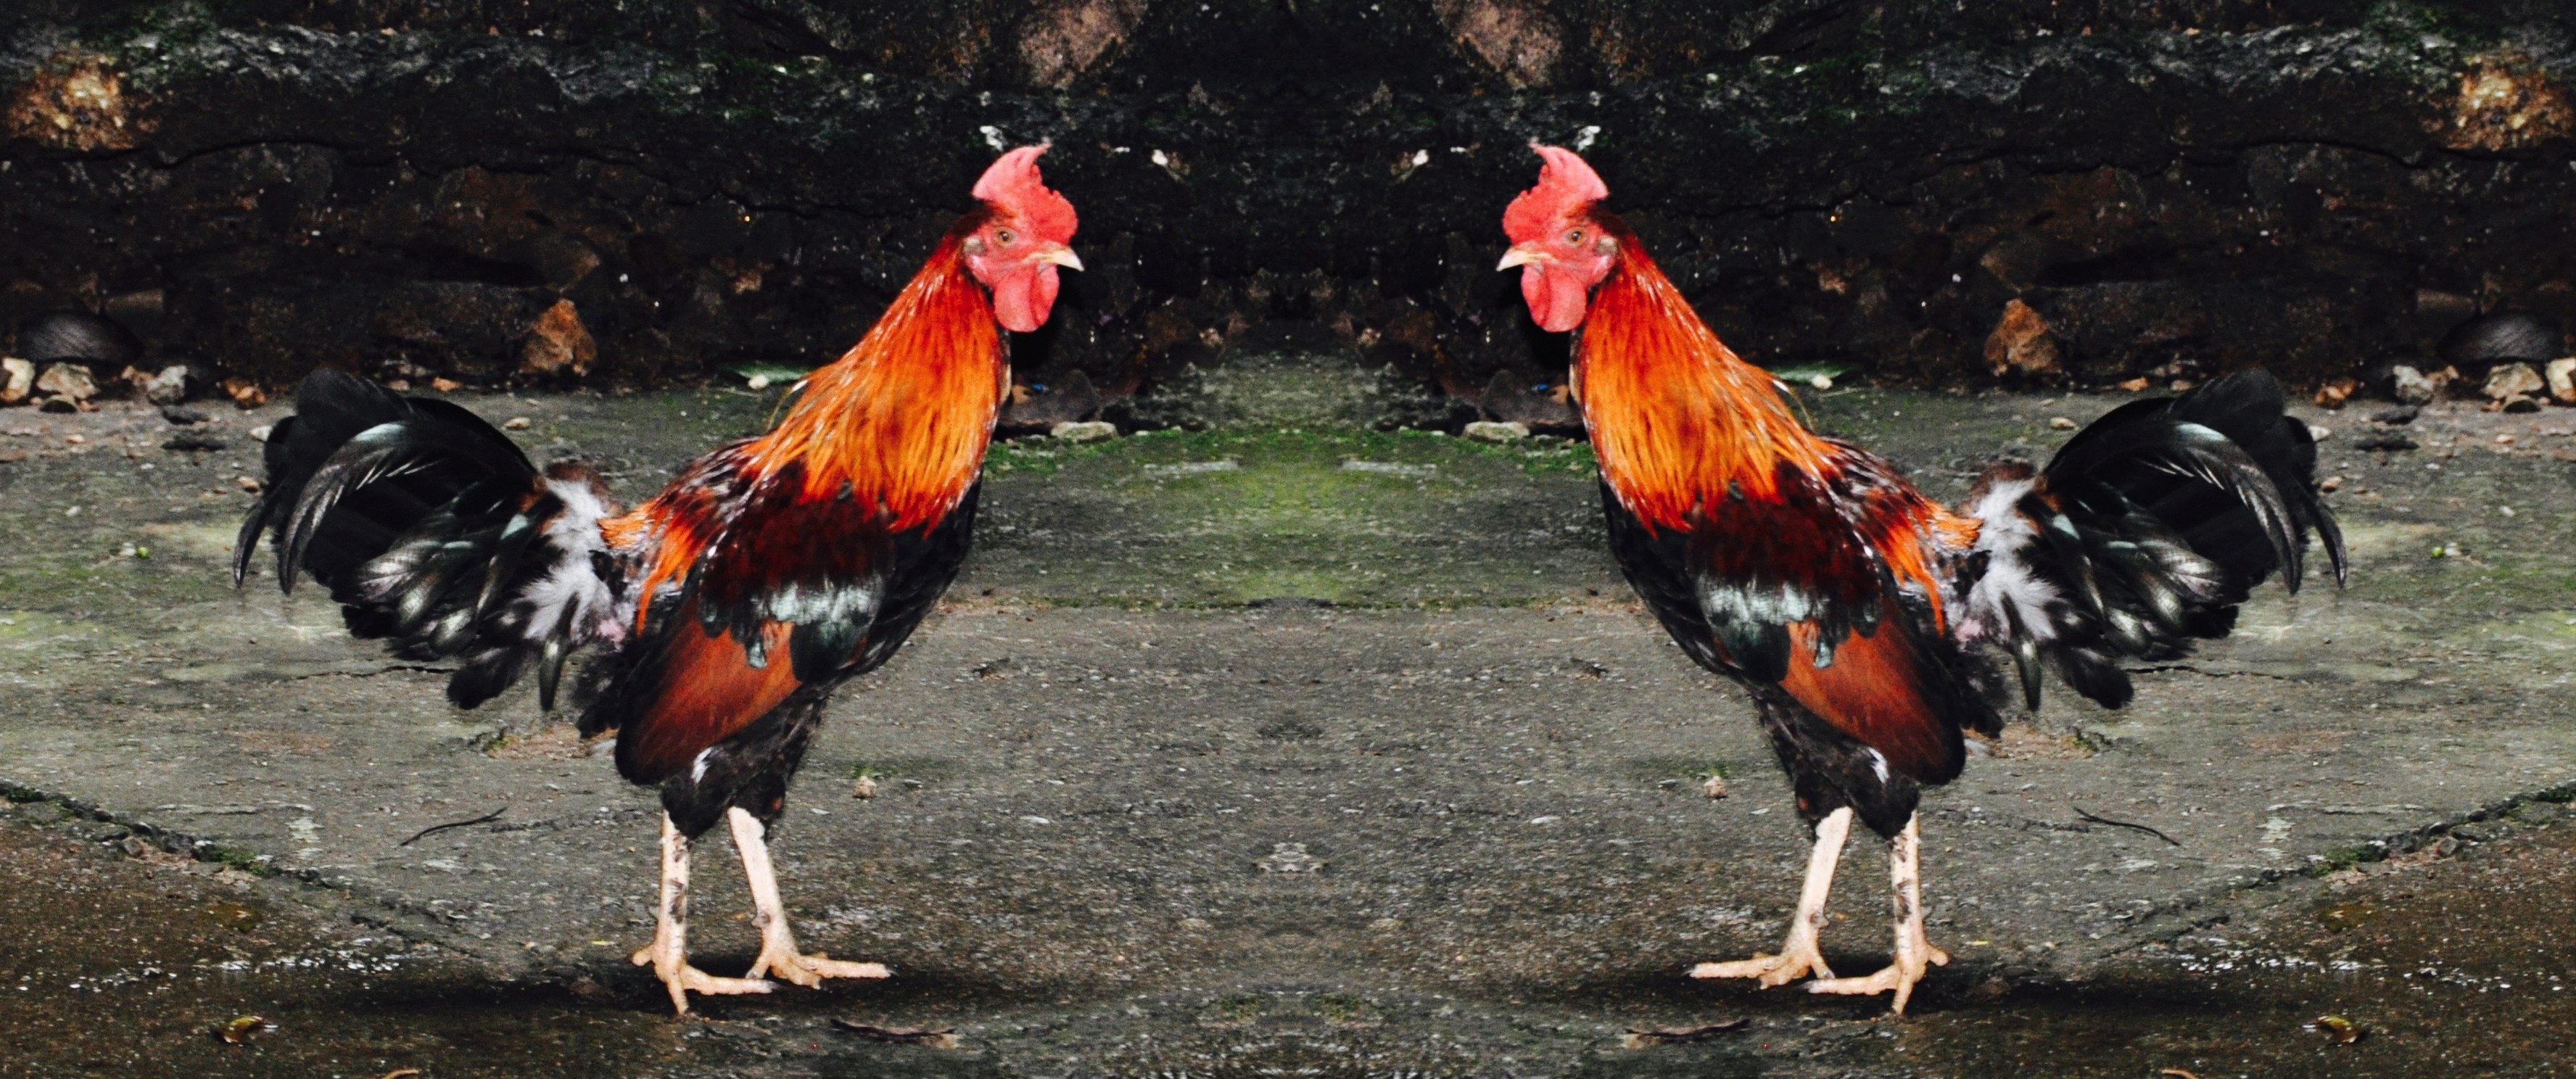 Double Roosters